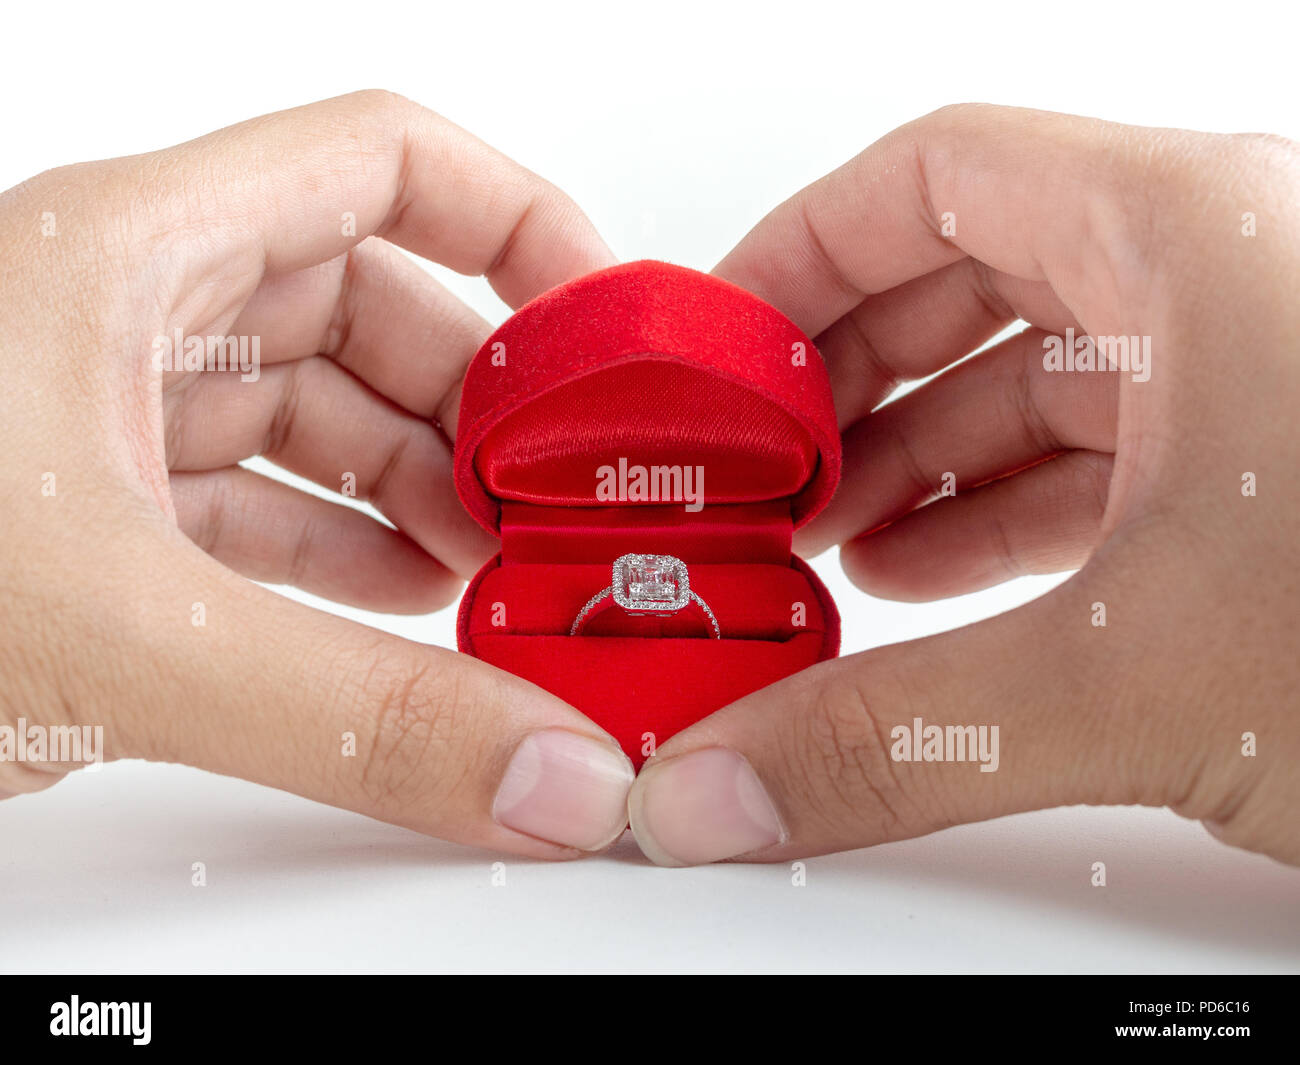 3a2cb9cab Diamond ring in red heart shape box in hands isolated on white background.